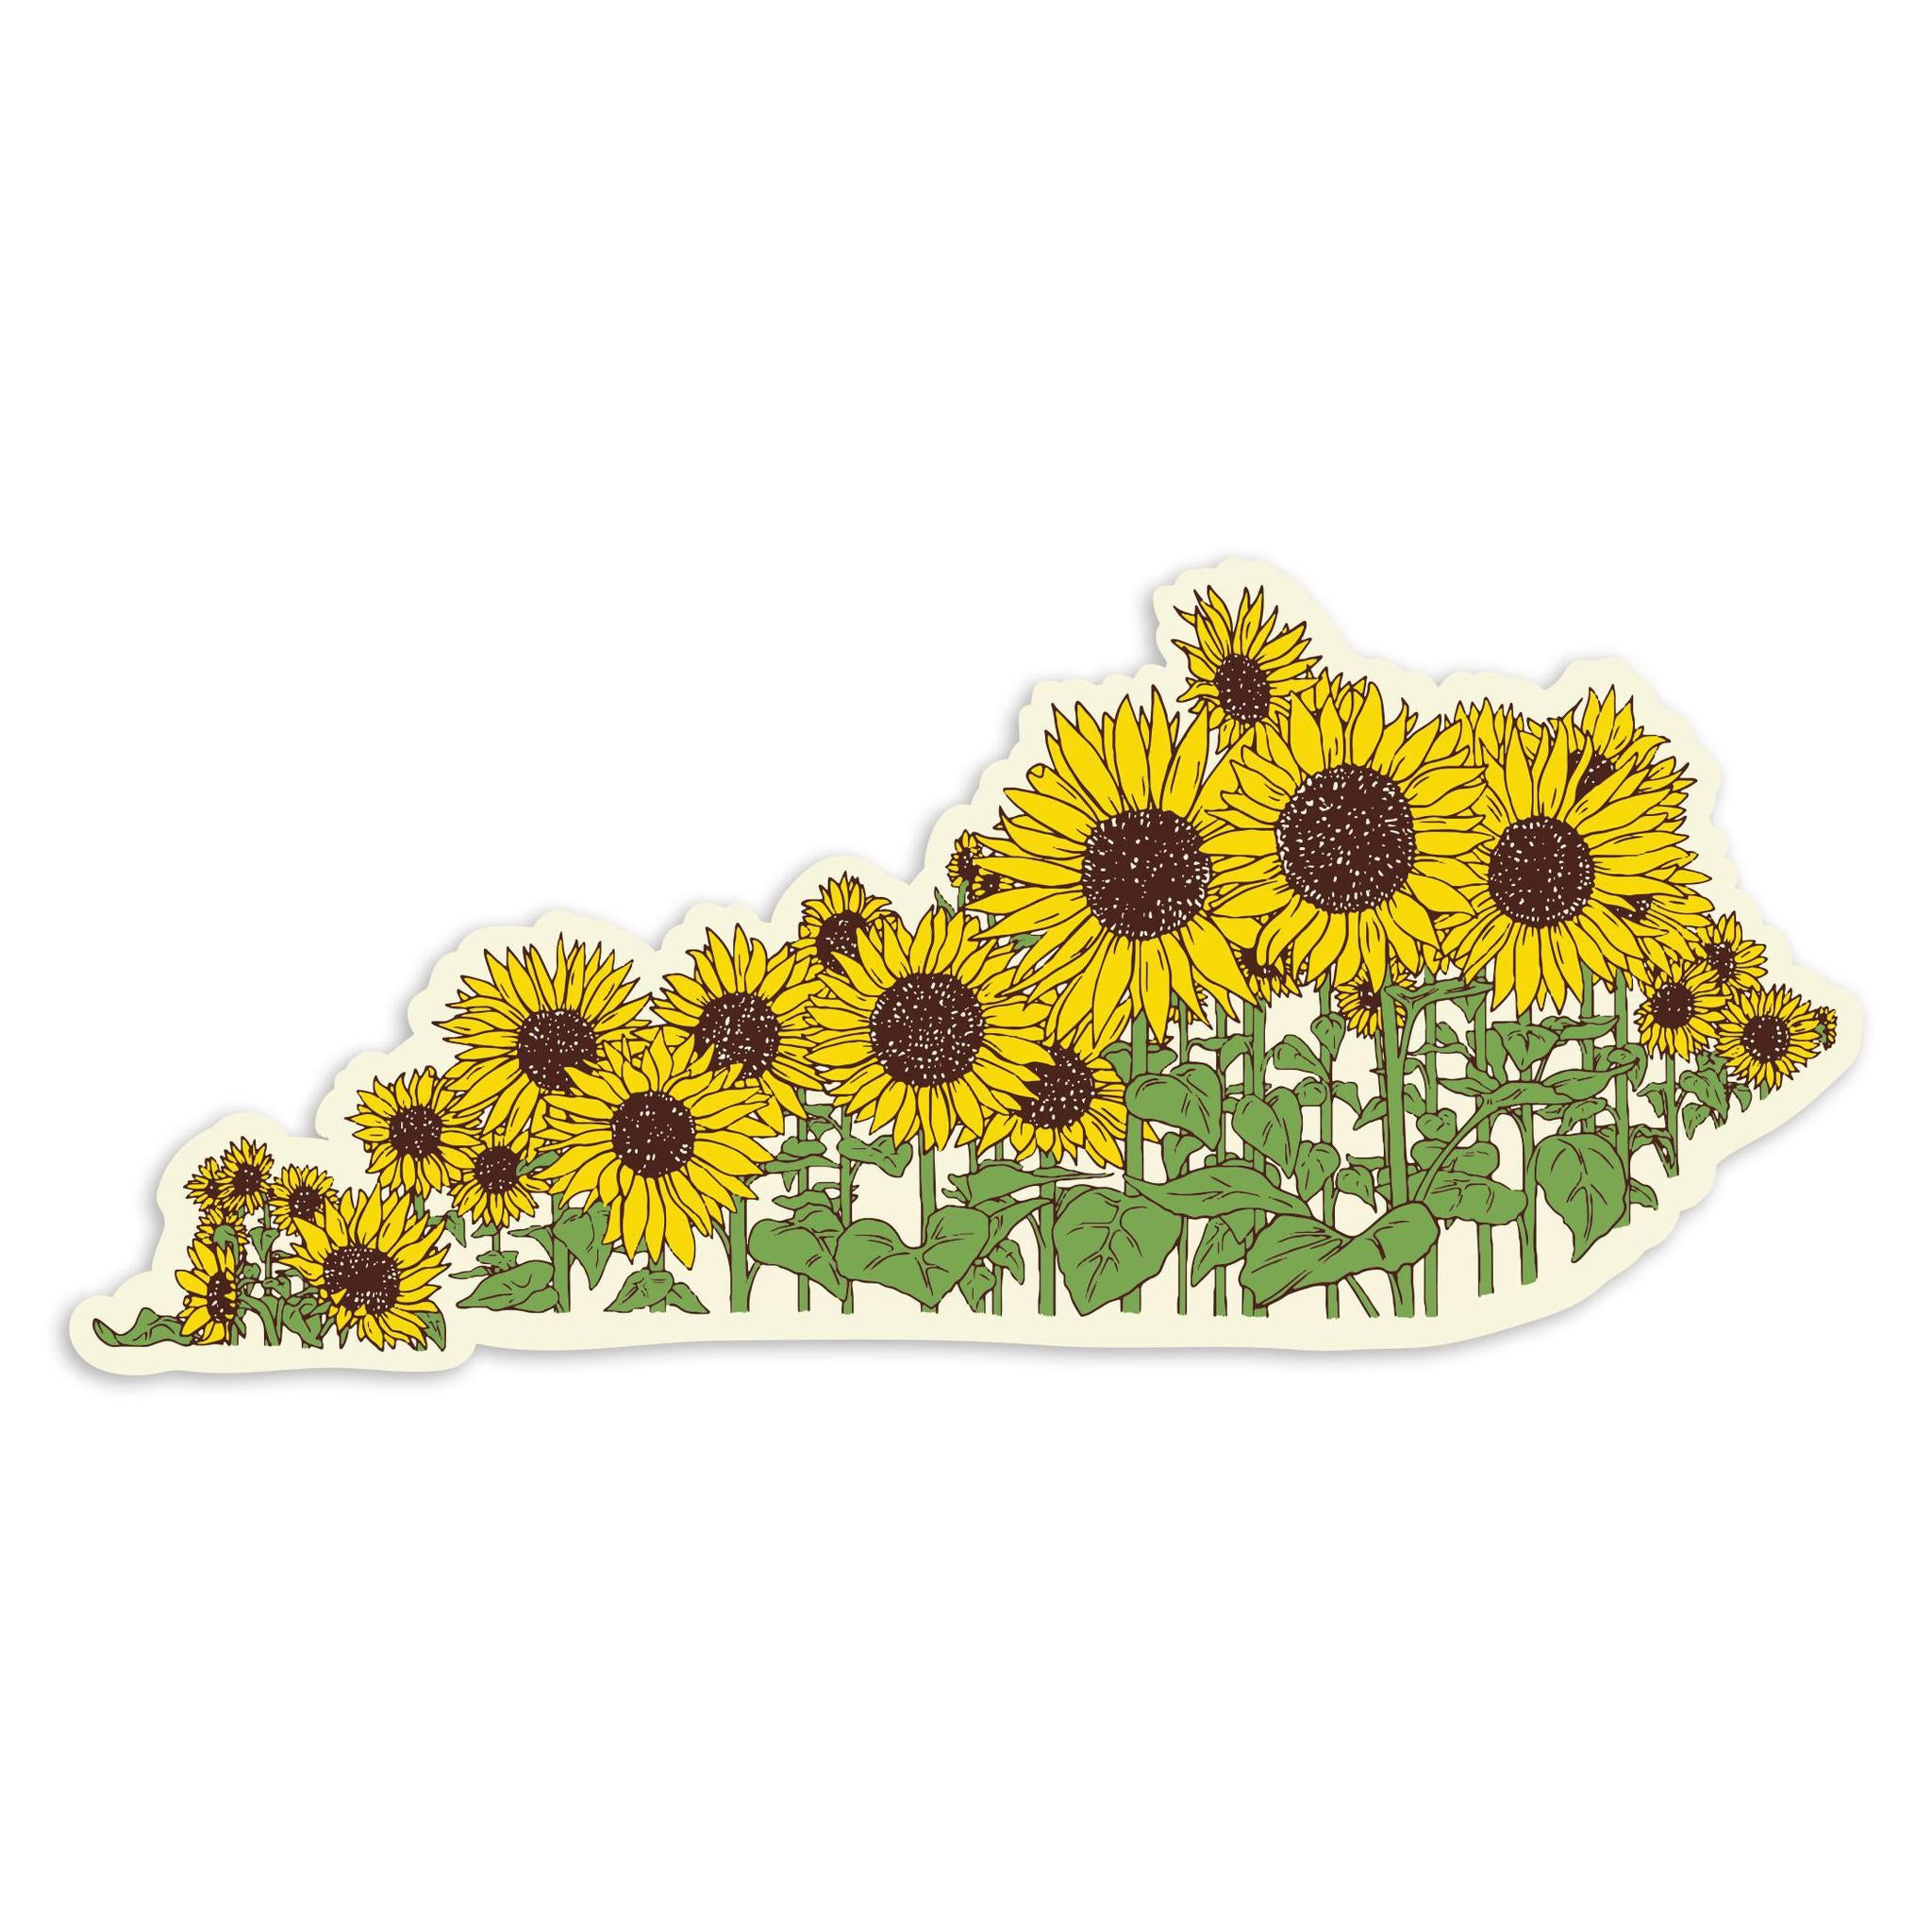 Sunflower Ky Sticker-Odds and Ends-KY for KY Store